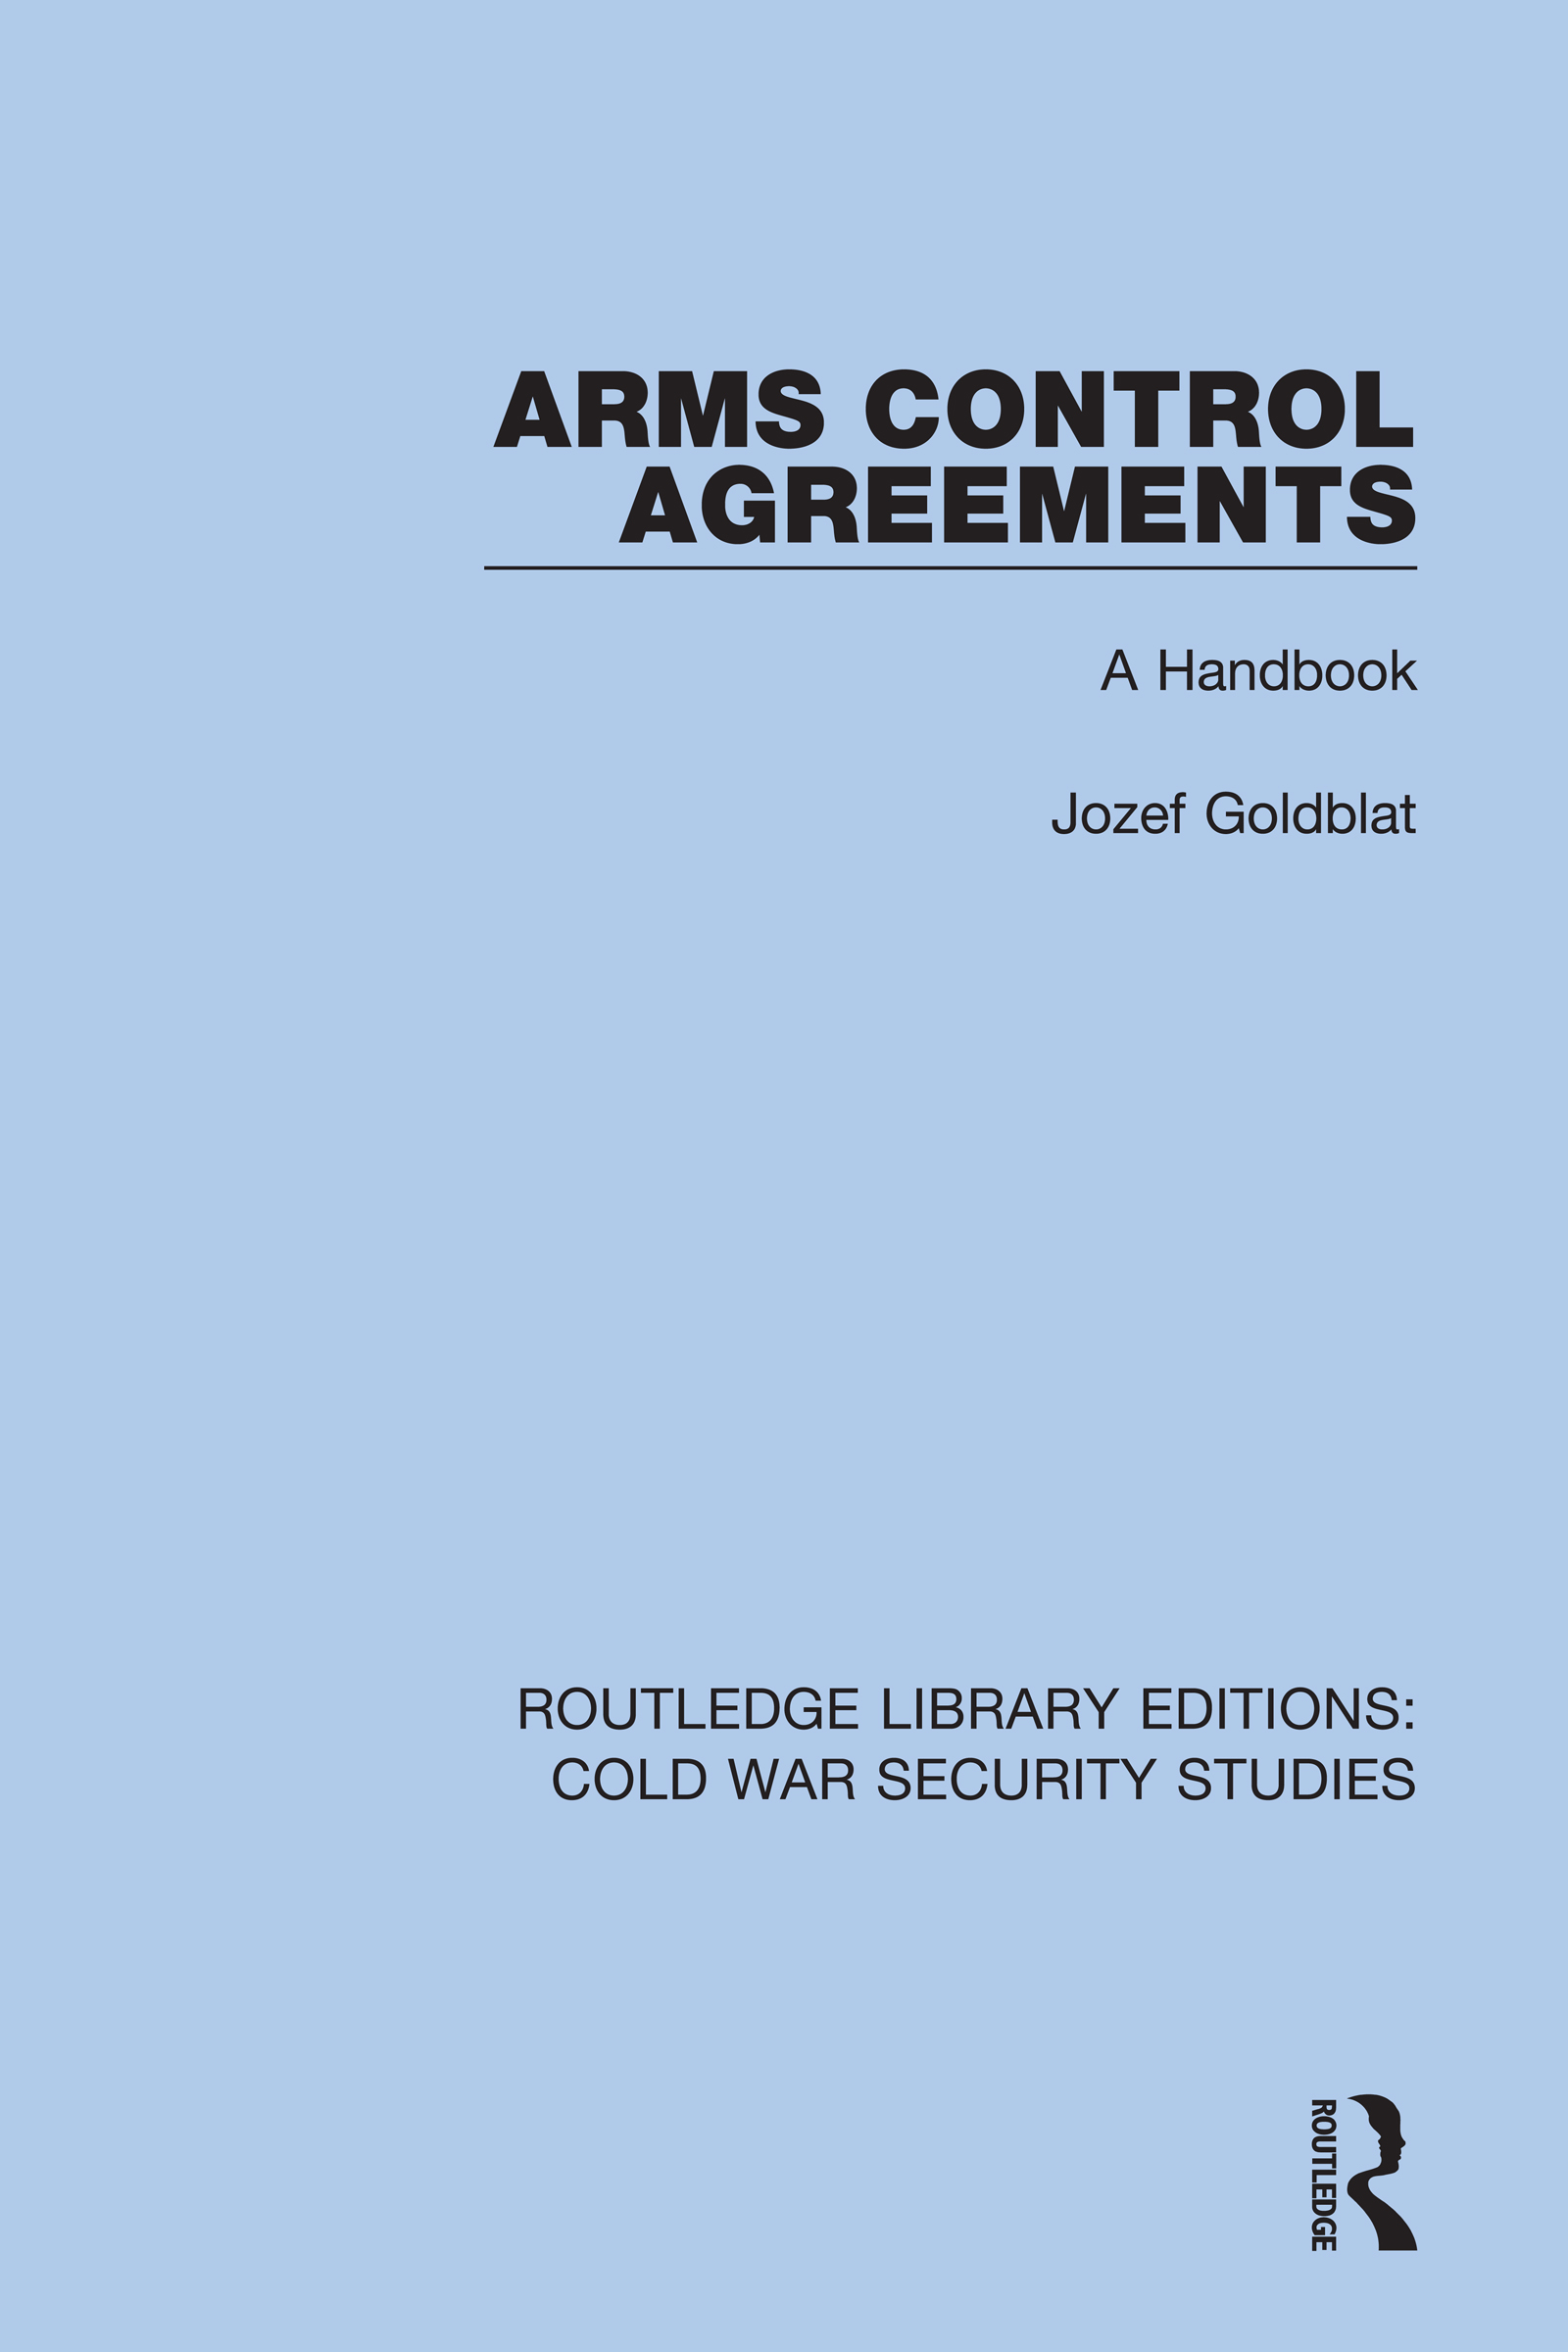 Arms Control Agreements